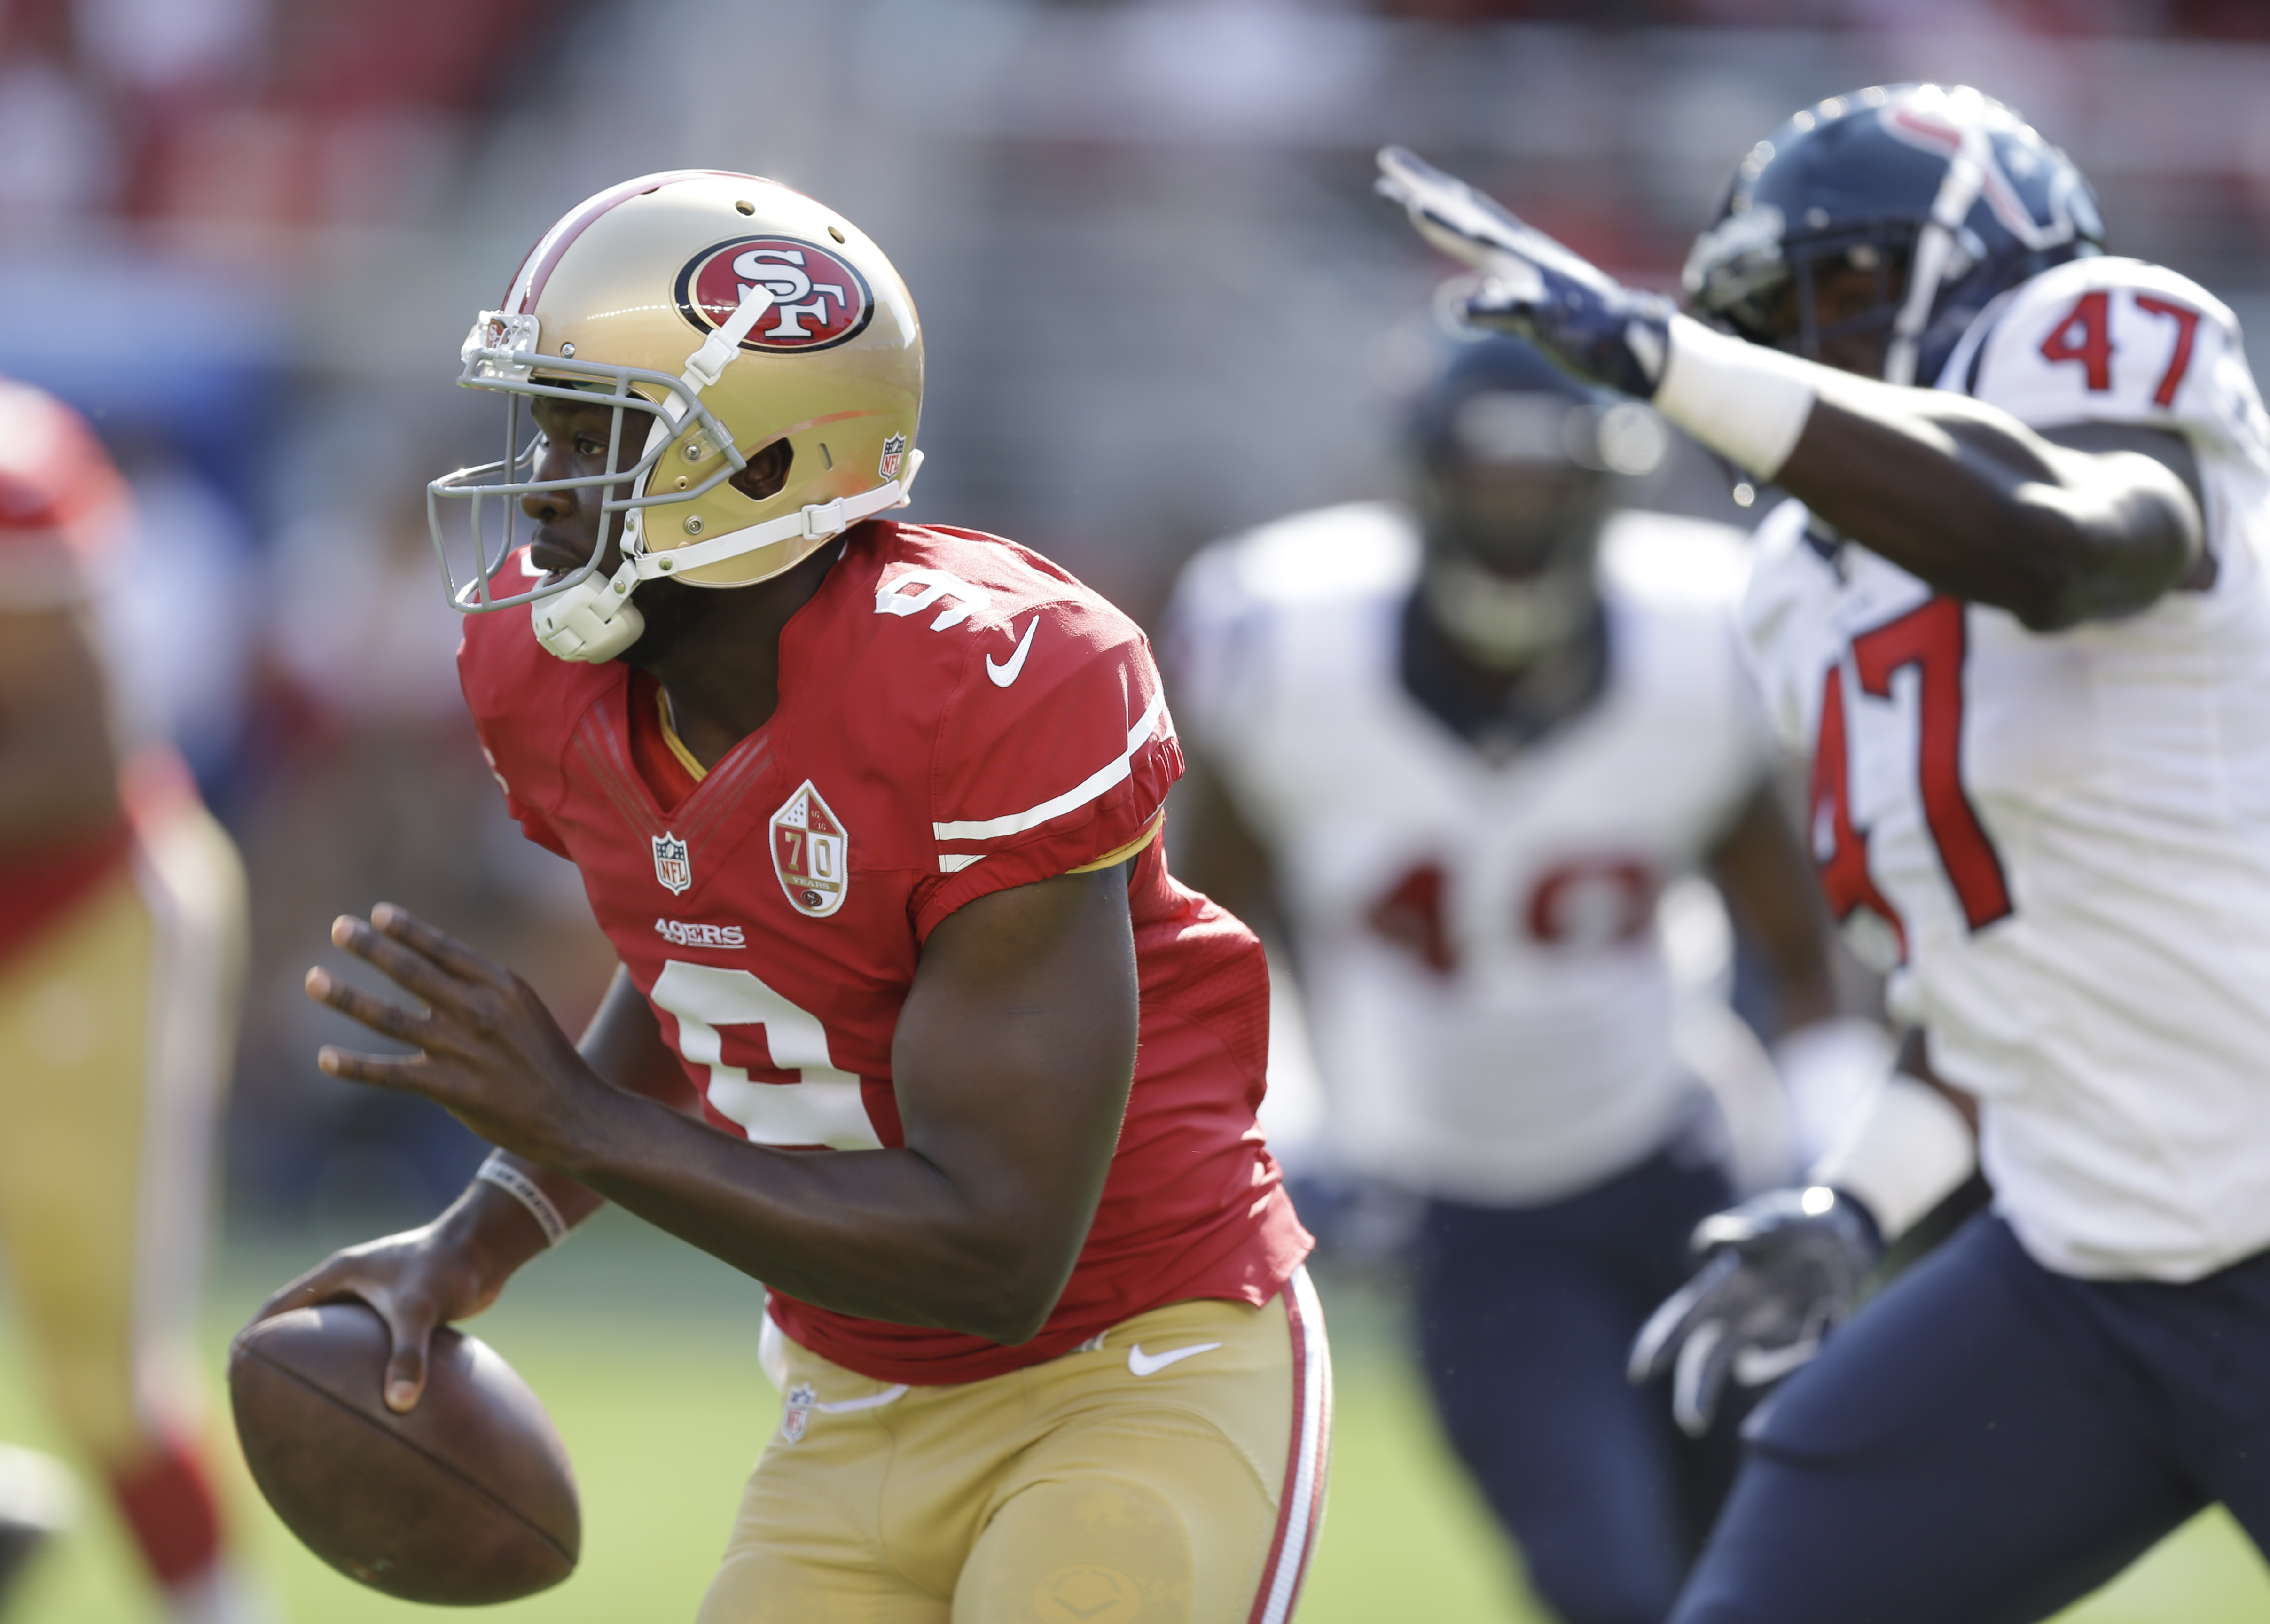 San Francisco 49ers quarterback Thad Lewis runs with the ball as Houston Texans linebacker Eric Lee (47) gives chase during the first half of an NFL preseason football game Sunday, Aug. 14, 2016, in Santa Clara, Calif. (AP Photo/Ben Margot)